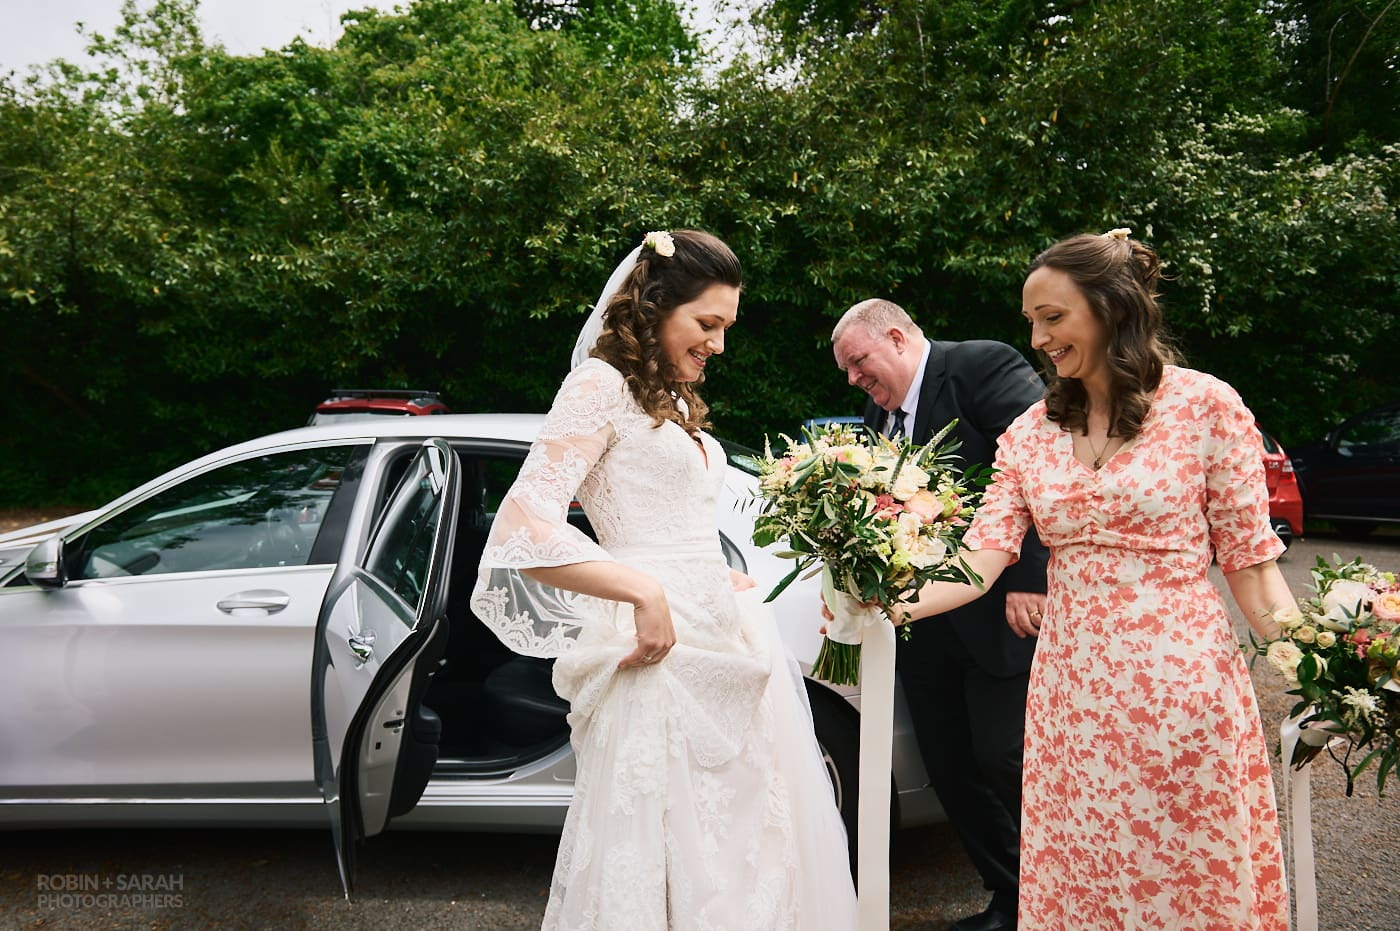 Bride and bridesmaid get out of wedding car